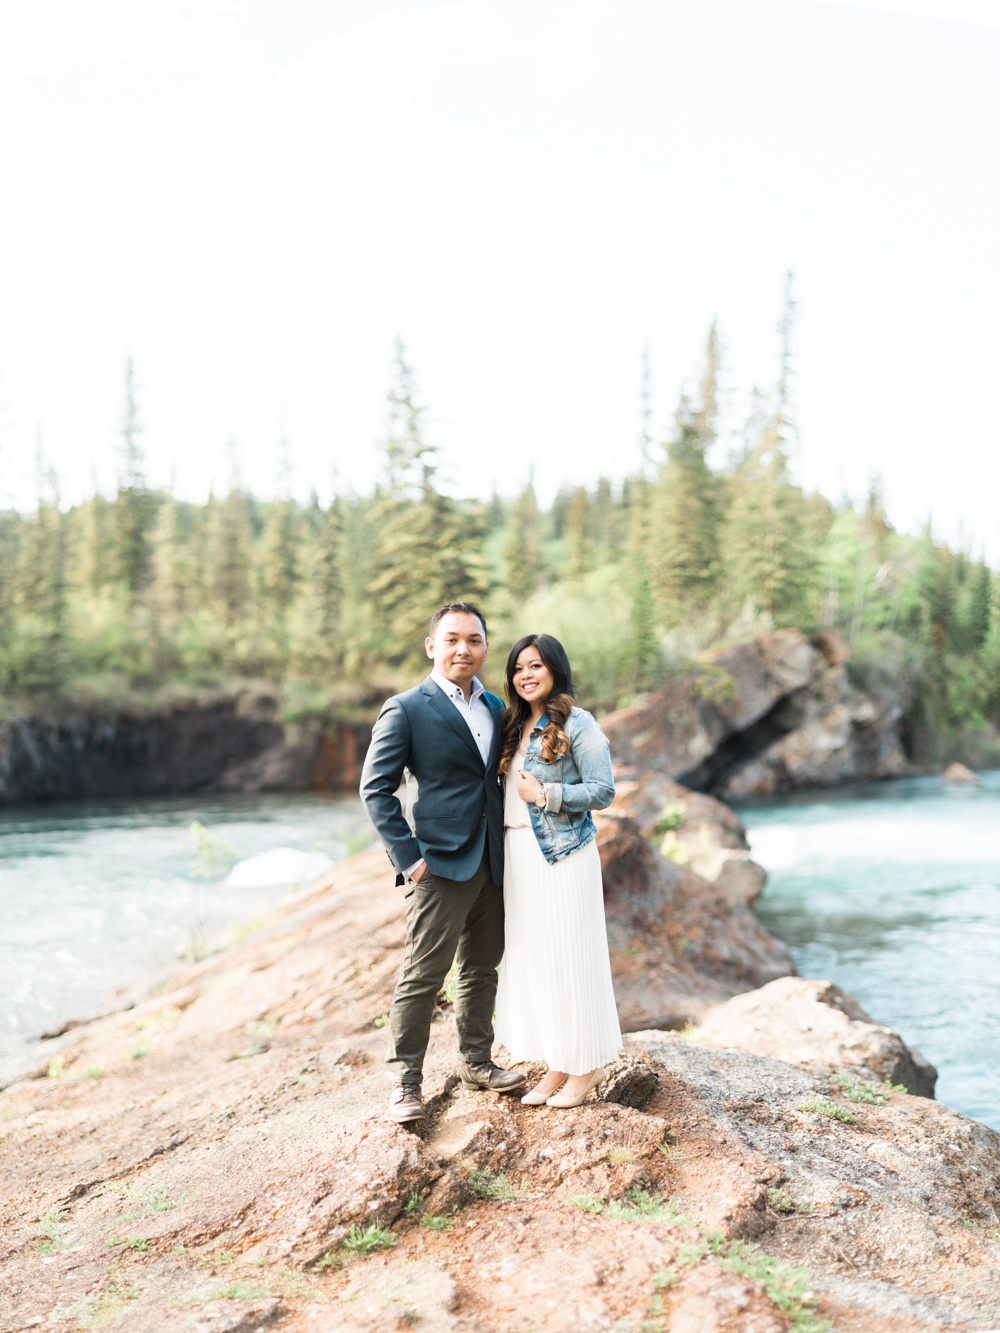 Kananaskis-wedding-photography-1.jpg